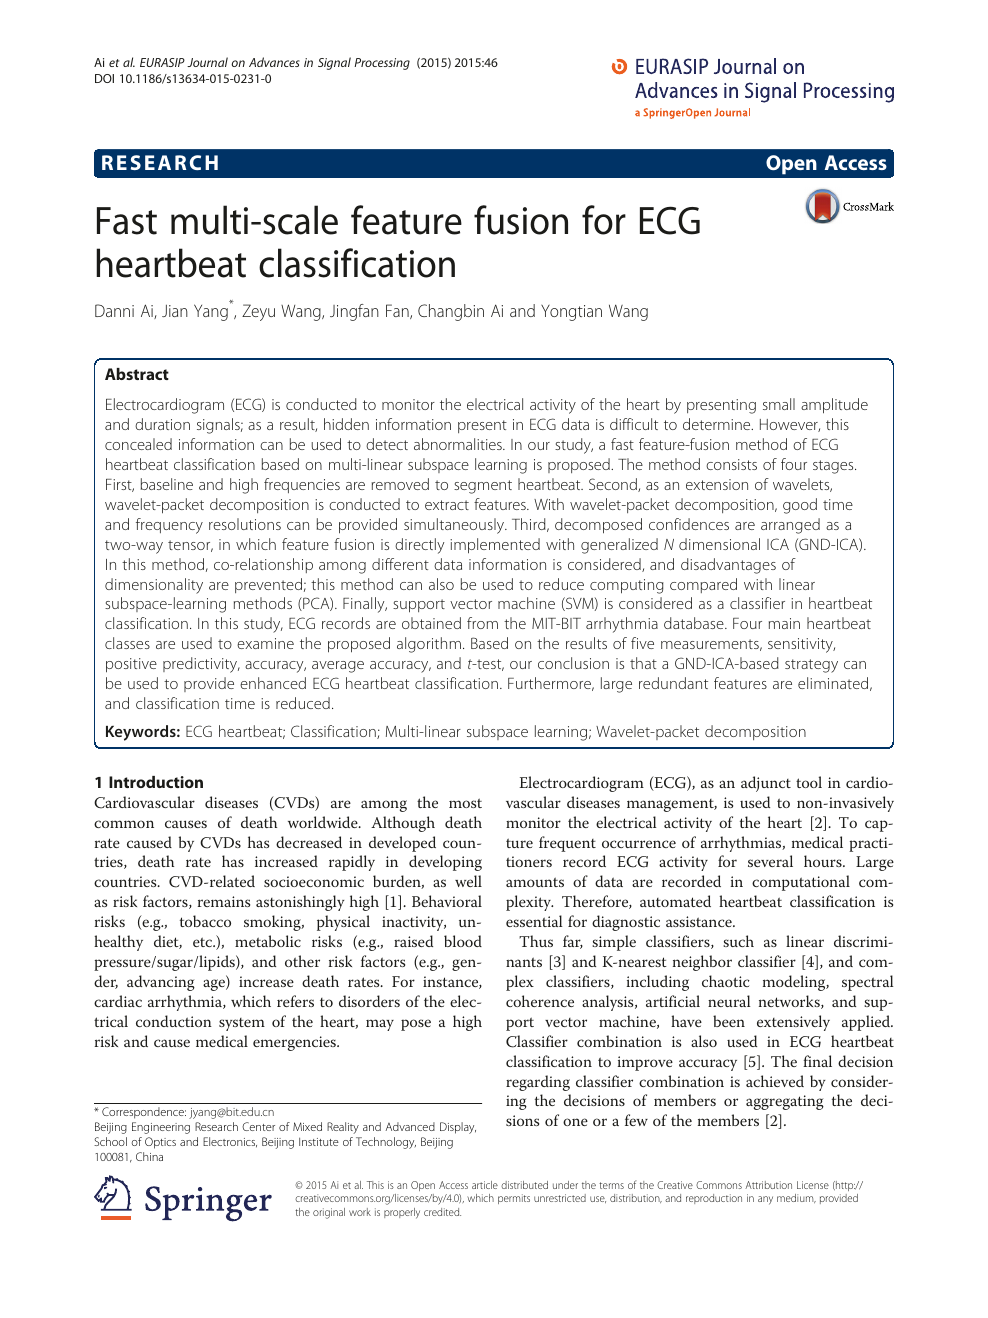 Fast multi-scale feature fusion for ECG heartbeat classification